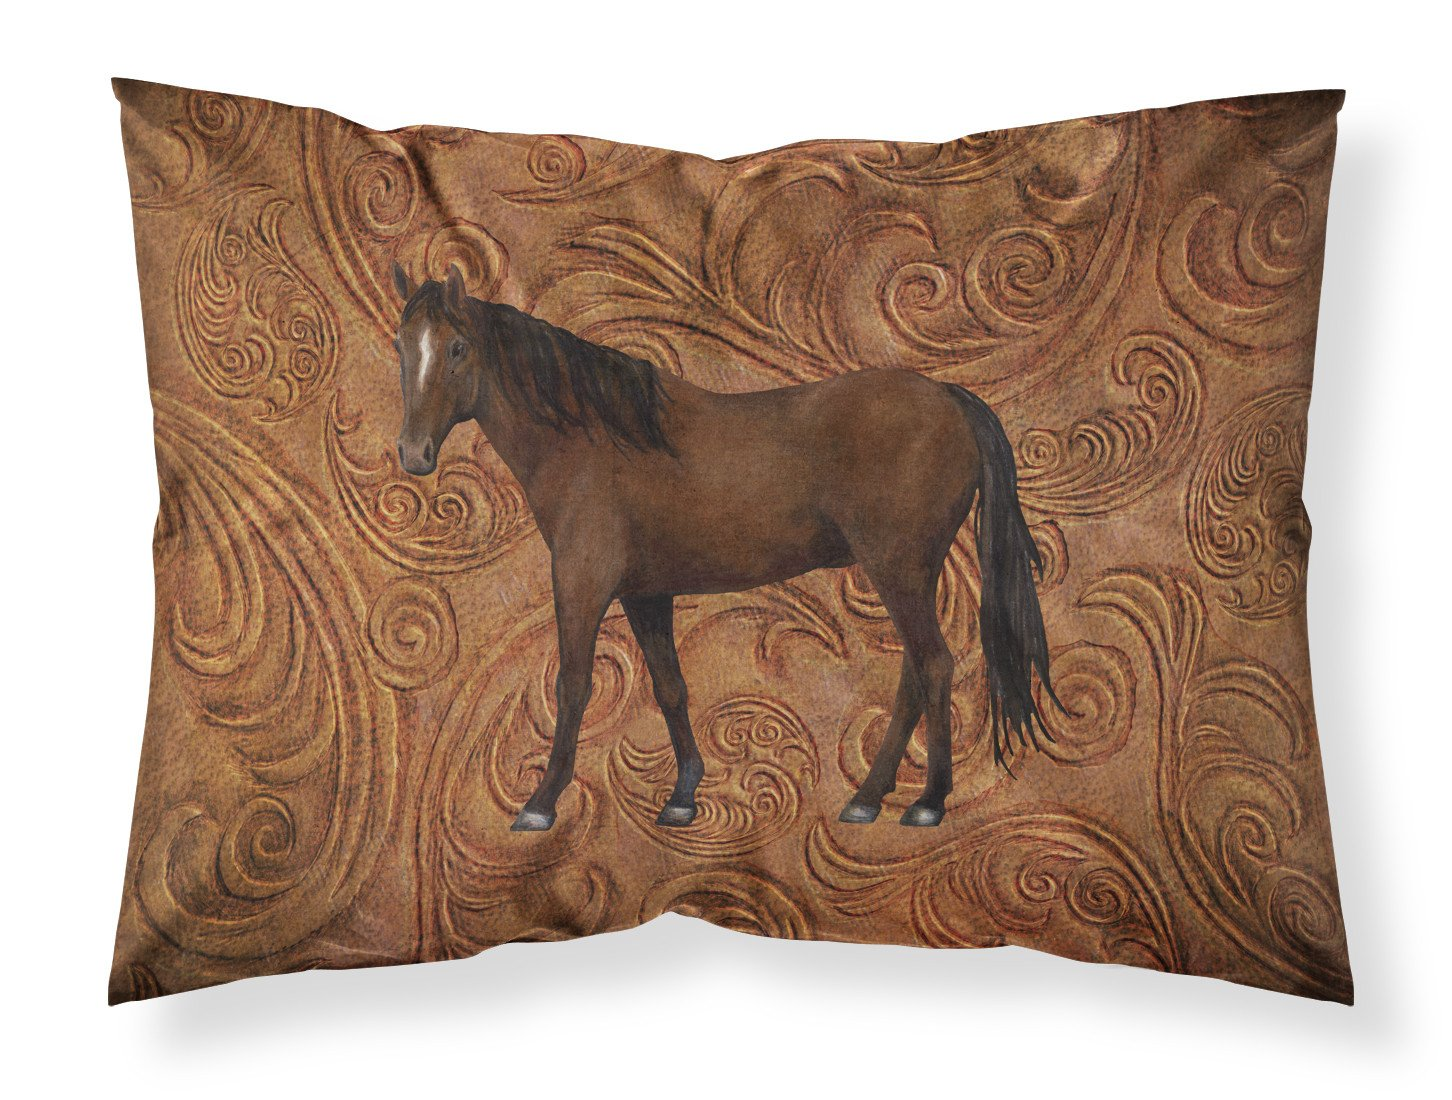 Horse Moisture wicking Fabric standard pillowcase SB3066PILLOWCASE by Caroline's Treasures